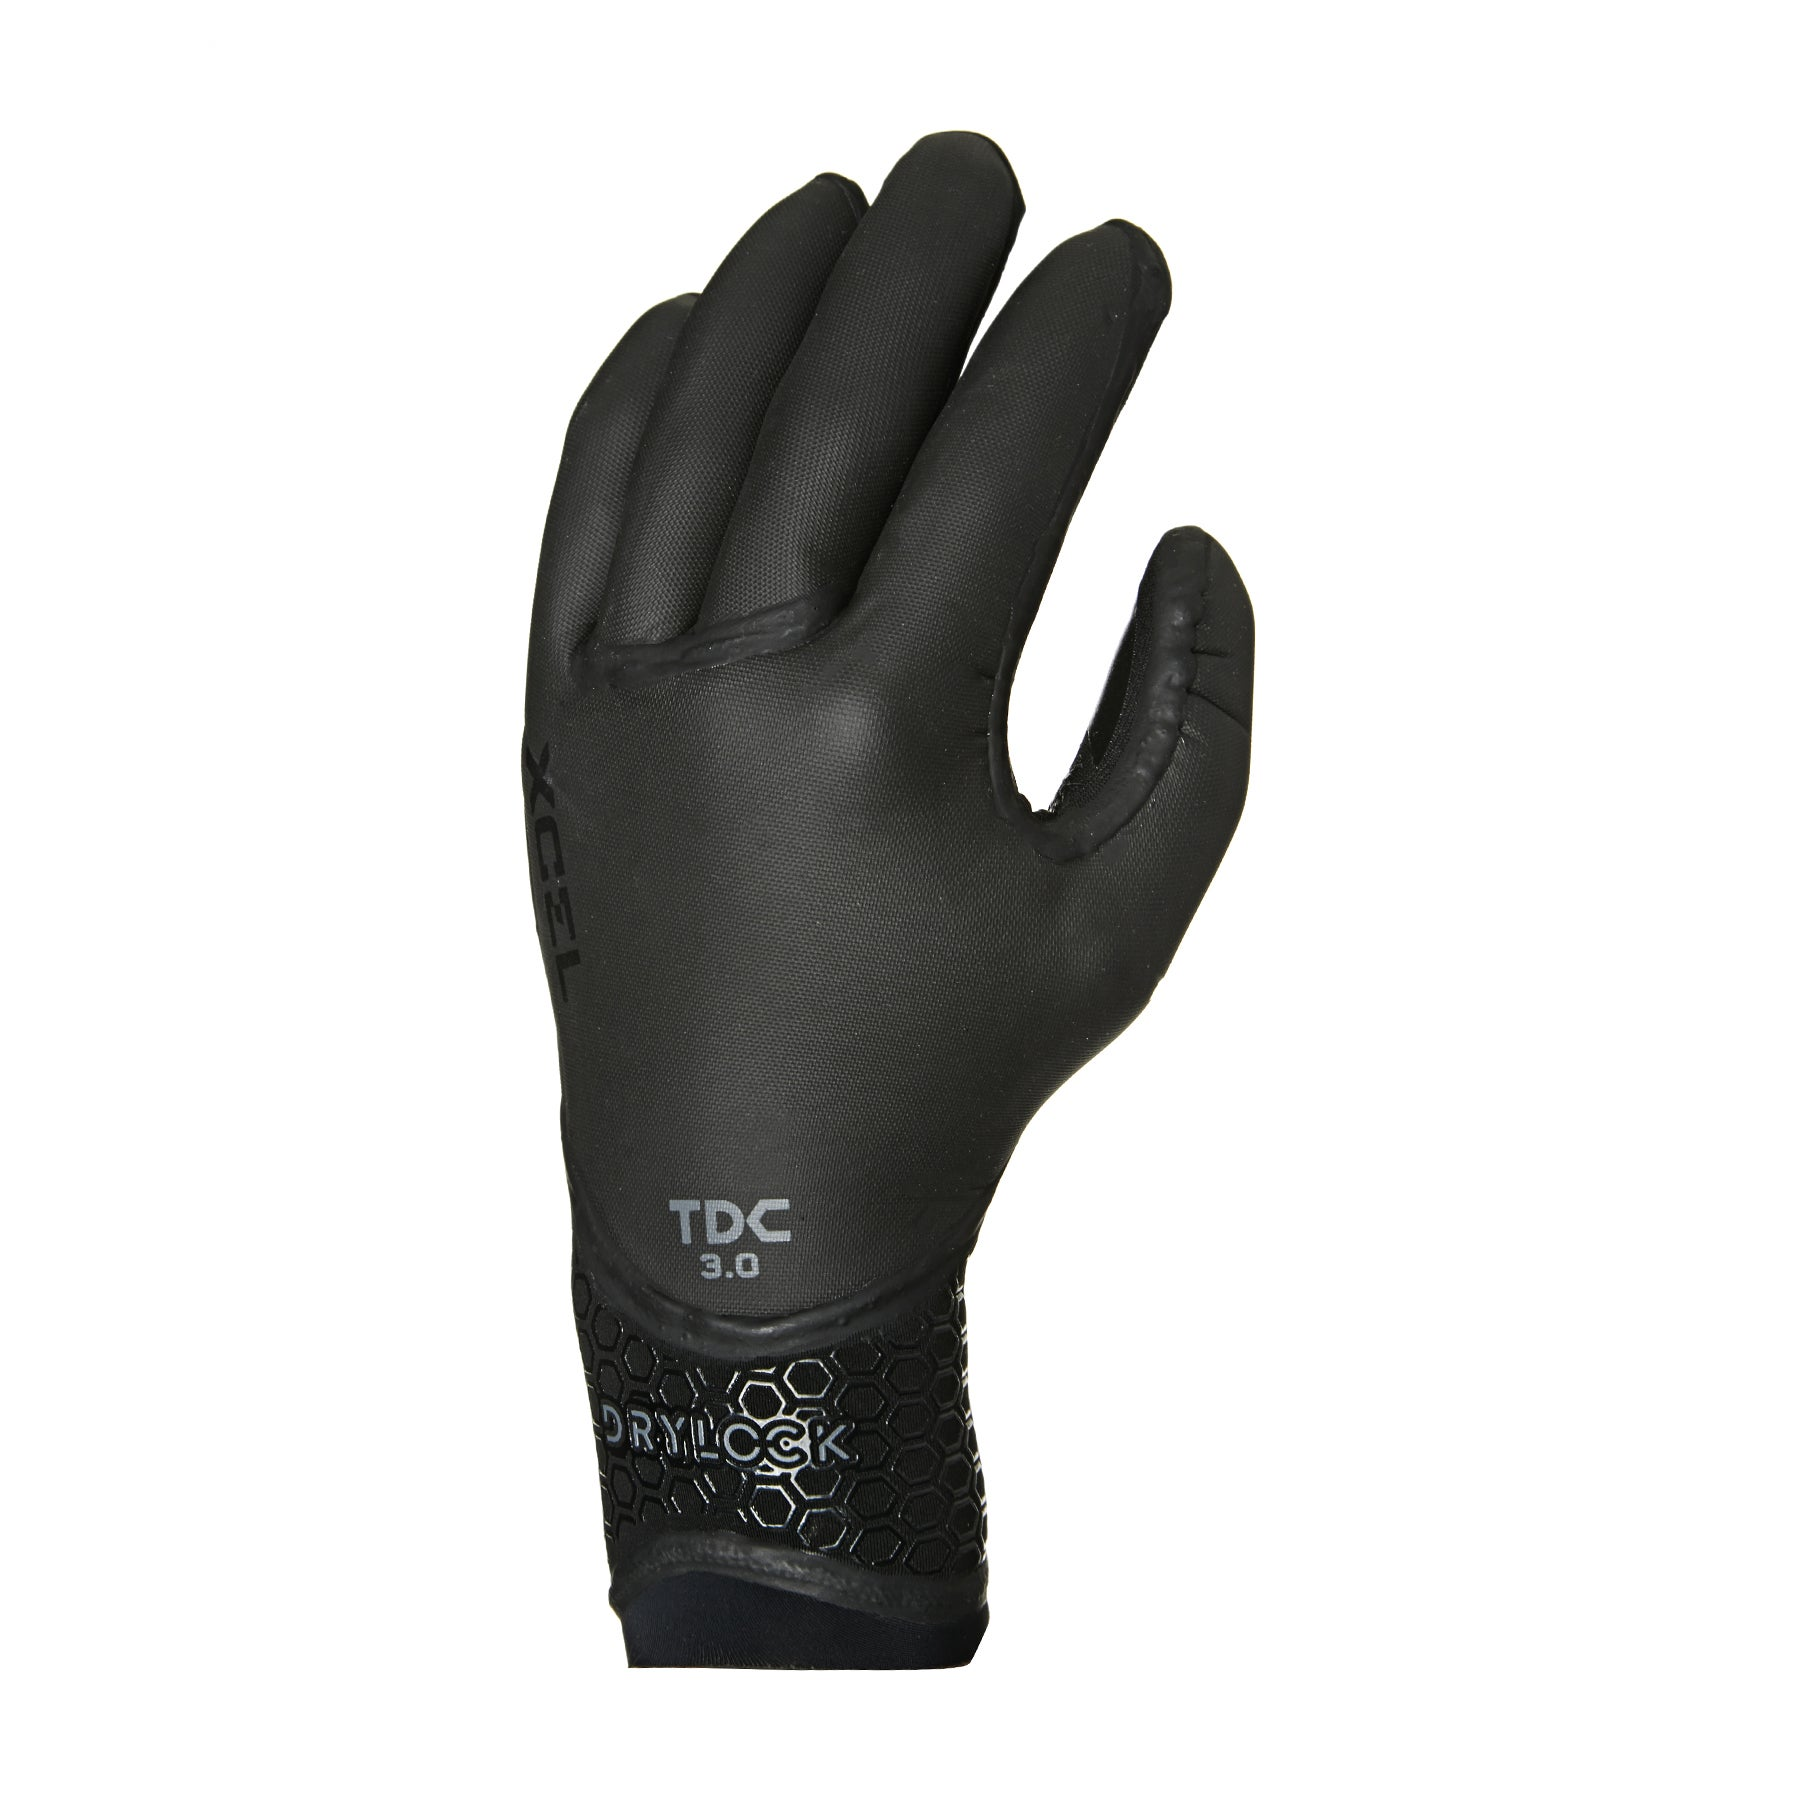 Xcel Drylock 3mm 5 Finger Wetsuit Gloves - Black